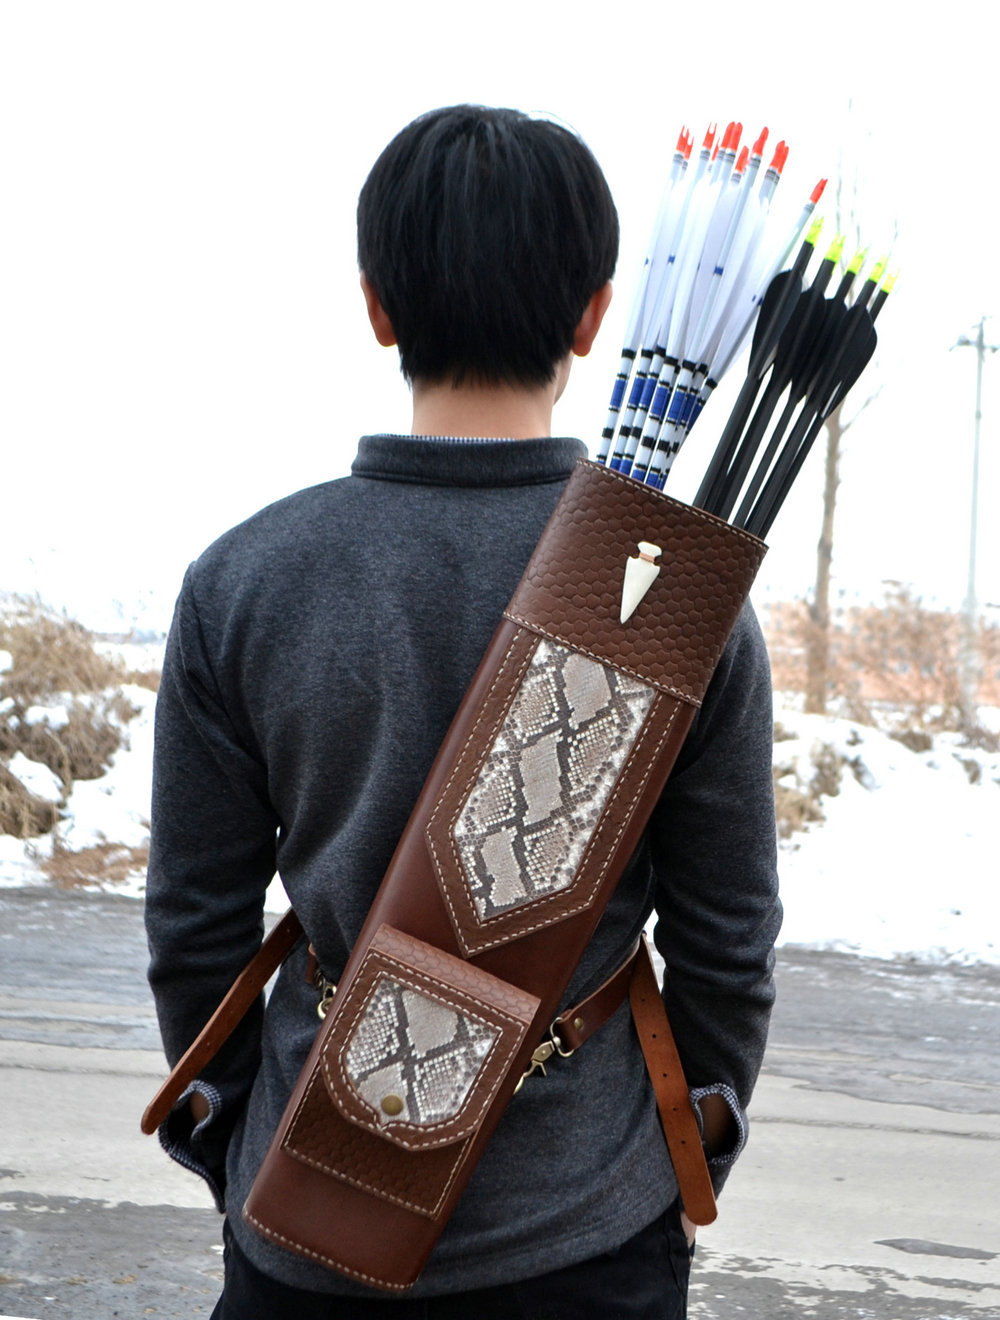 High quality Hand Crafted Single/three point shoulder back type snakeskin Leather Archery Quiver Brown holding for Hunting outdoor camouflage archery hunting arrow quiver water resistant archery quiver holder caza arrows bow quiver bag with zipper